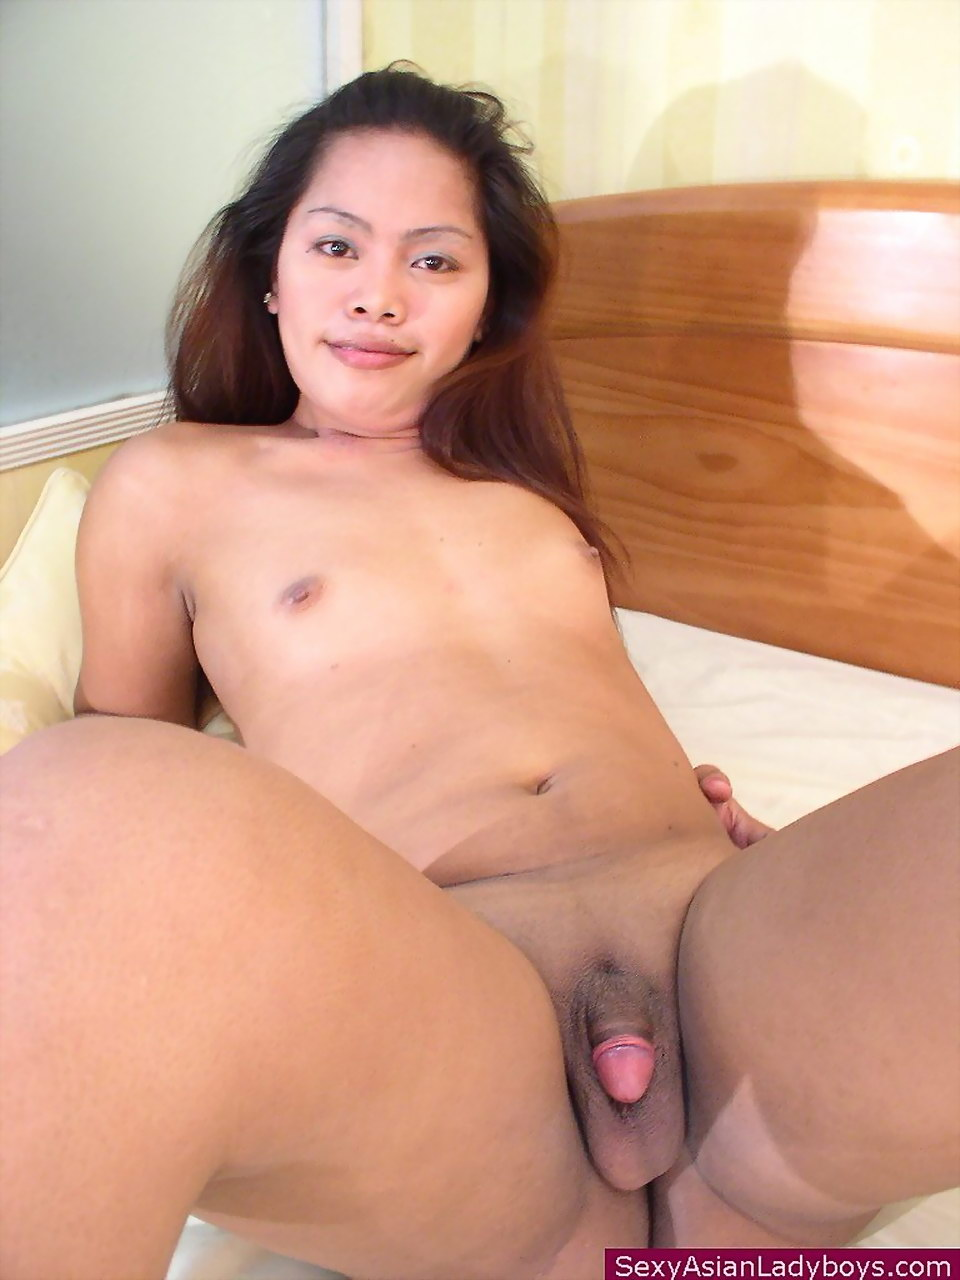 american lady boy nude